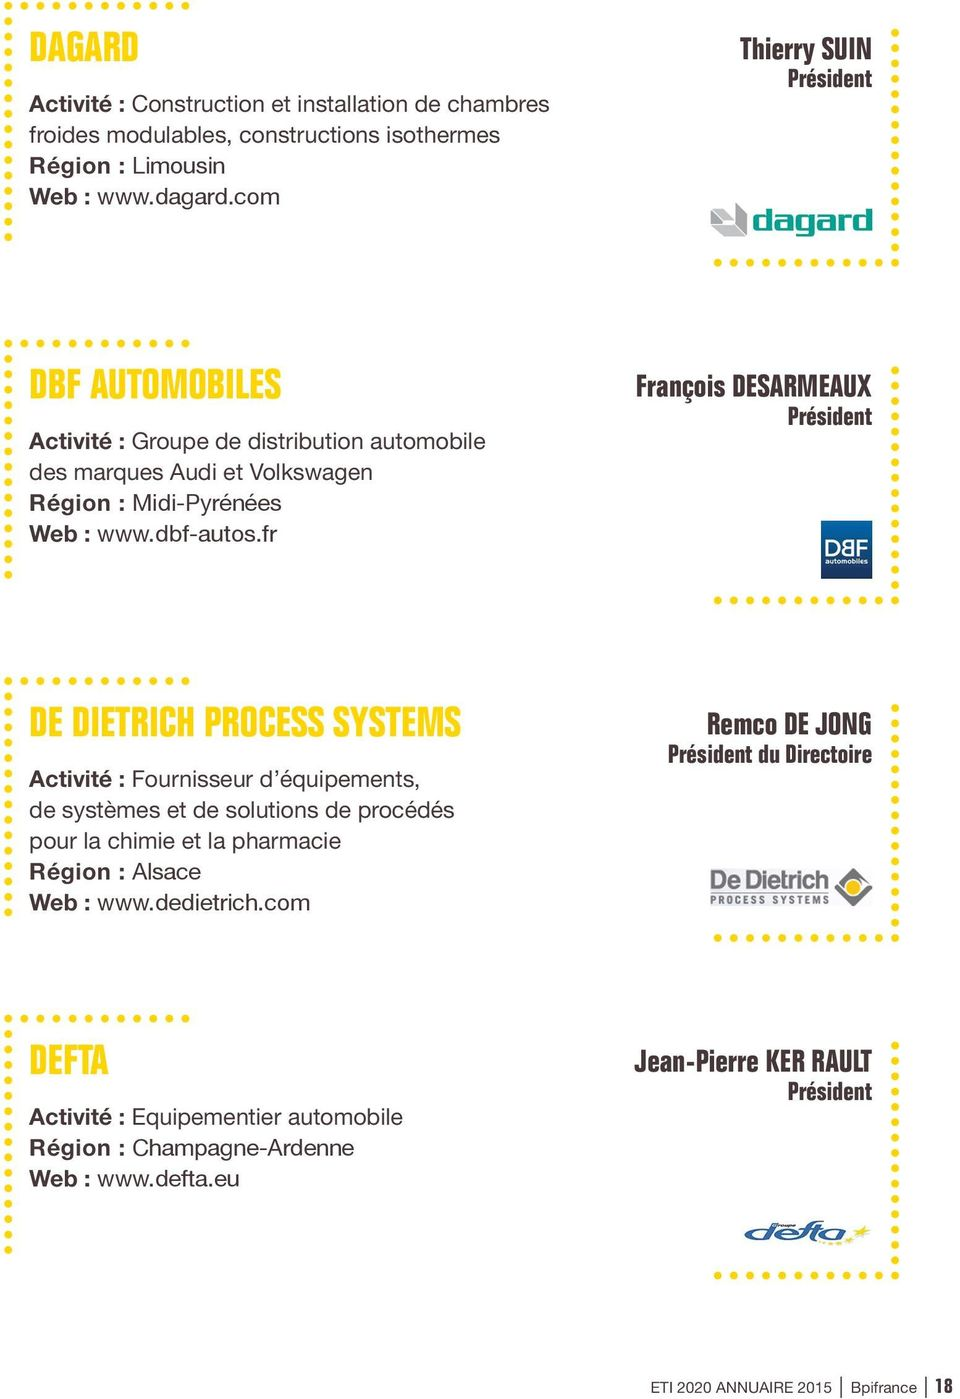 Eti 2020 annuaire 2015 bpifrance 2 pdf for Construction chambre froide pdf